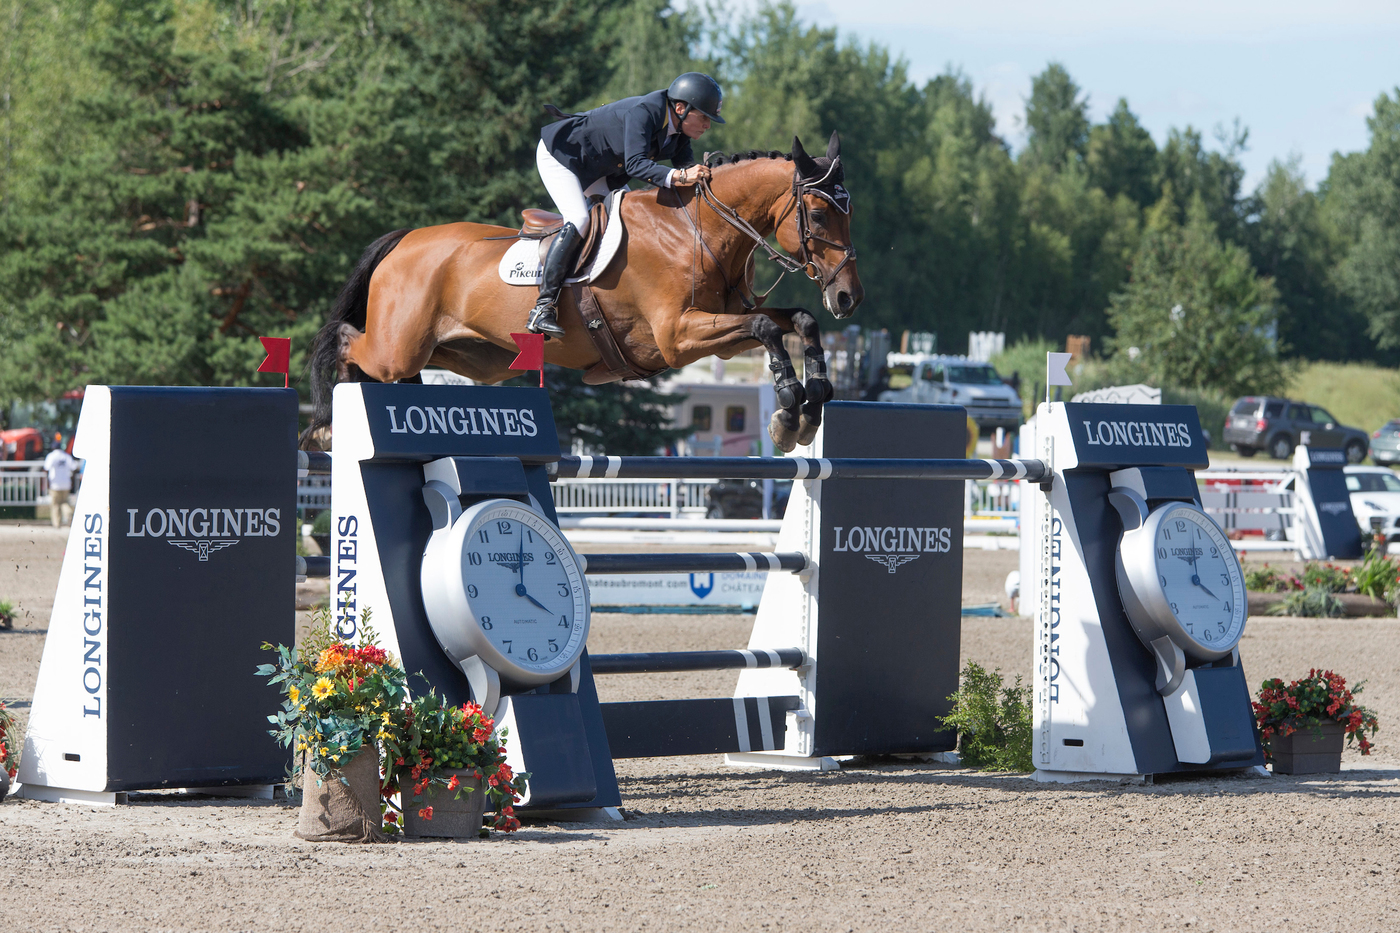 Longines Show Jumping Event: New season of the Longines FEI World CupTM Jumping North American League opens with the victory of Jonathan McCrea in Bromont 4